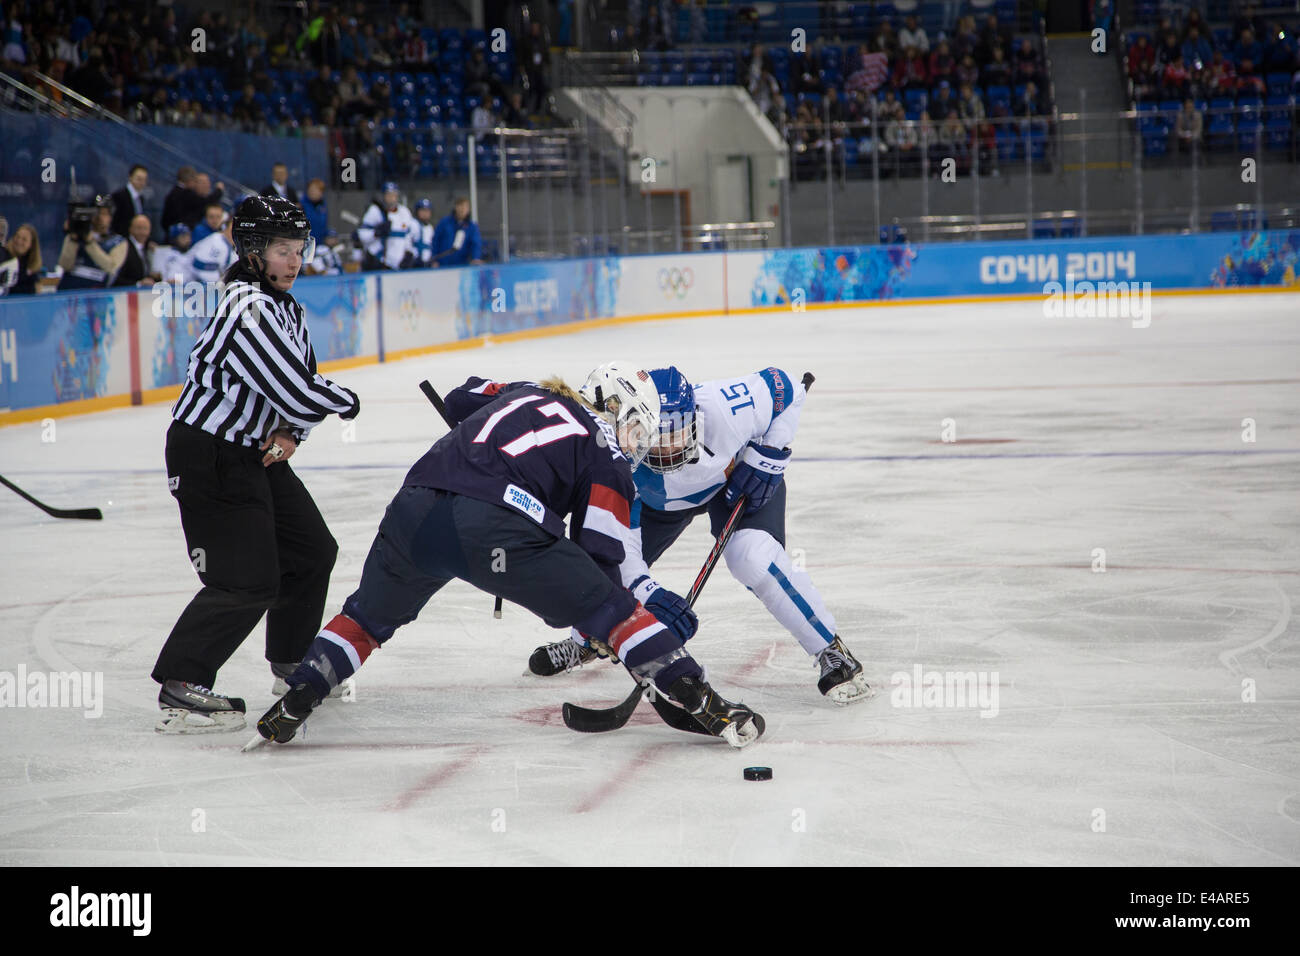 Jocelyne Lamoureux (USA) and Minttu Tuominen (FIN) faceoff during ice hockey game at the Olympic Winter Games, Sochi - Stock Image